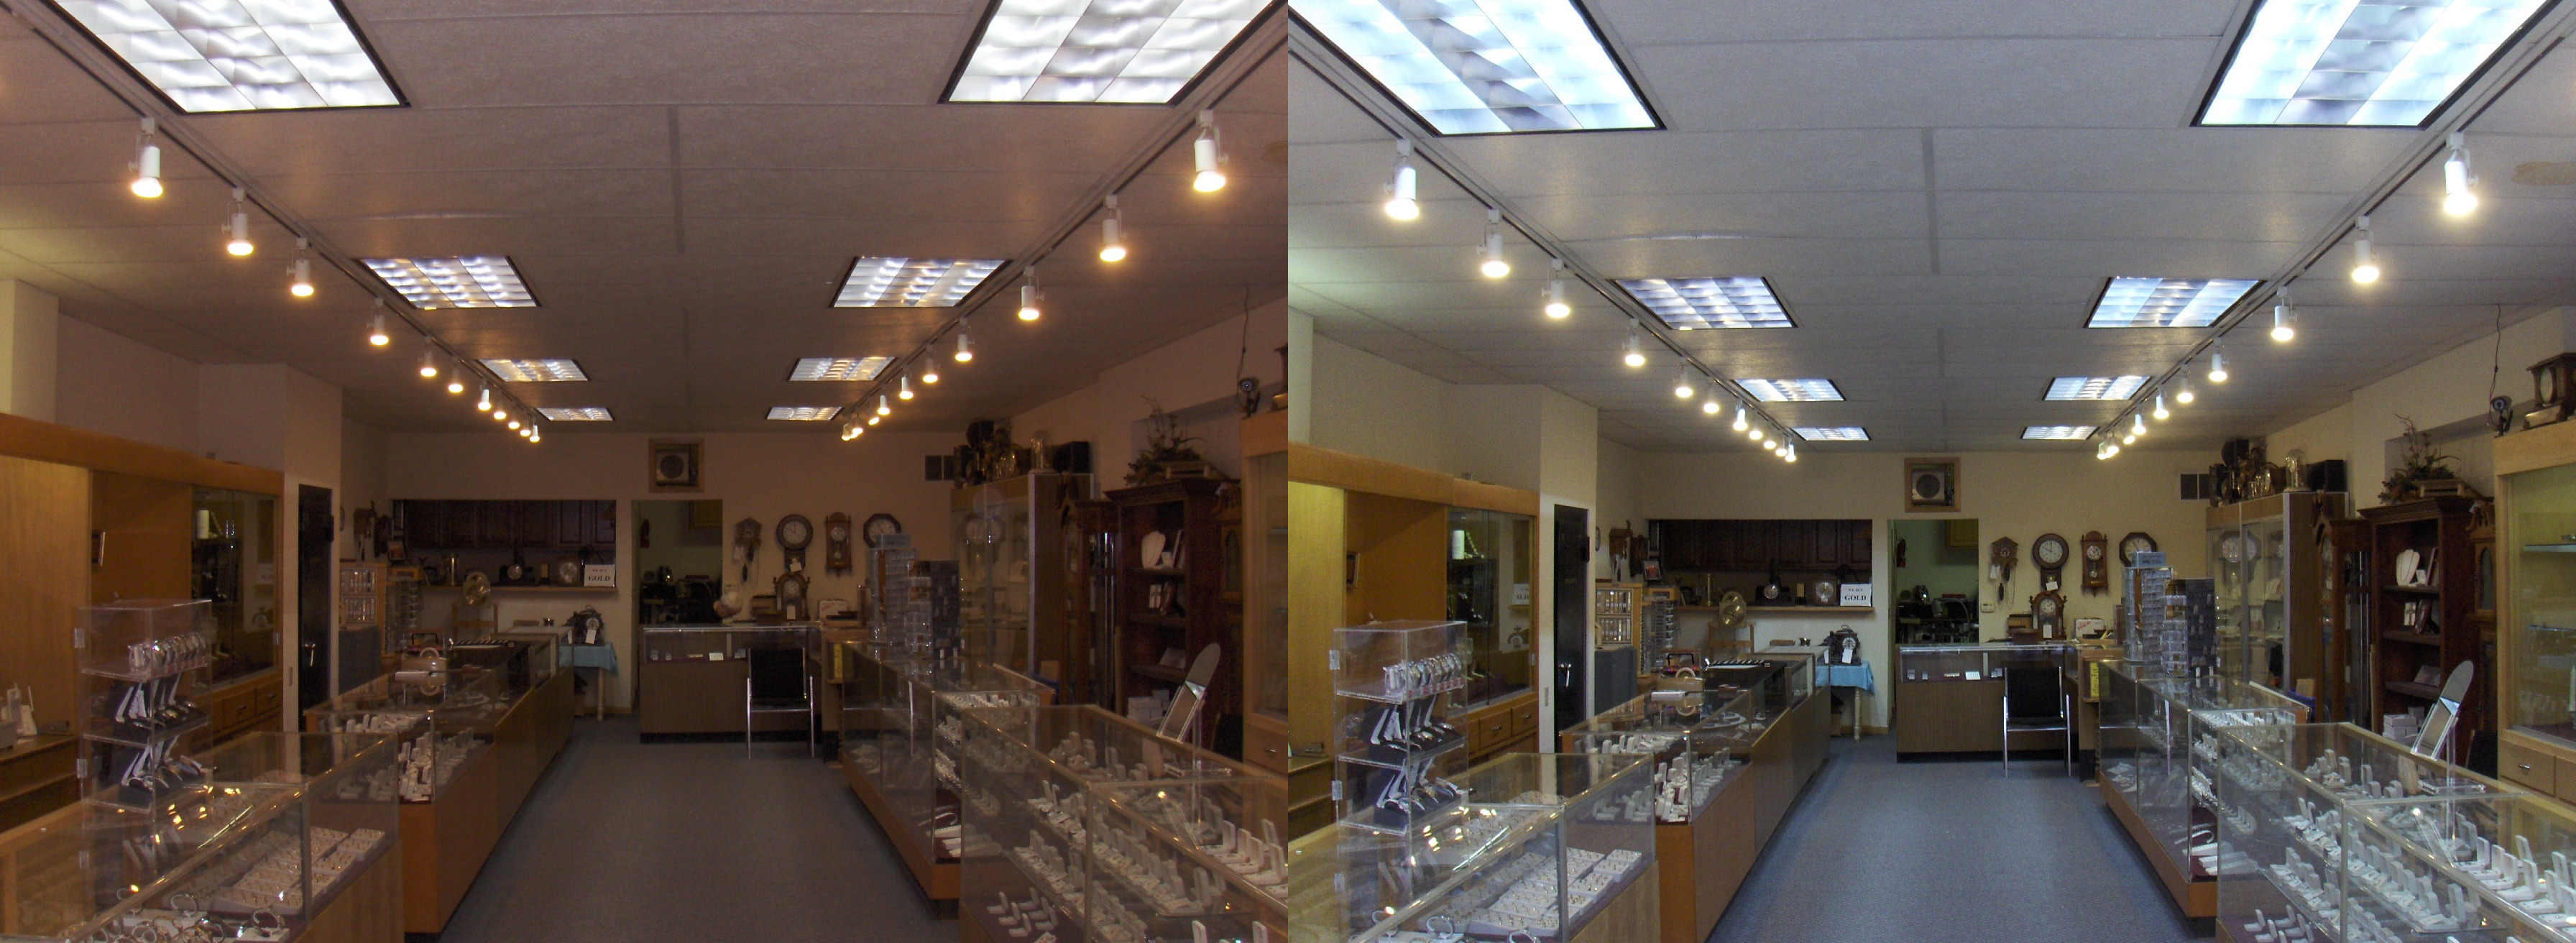 LEDs in jewelry store 2015 DLC